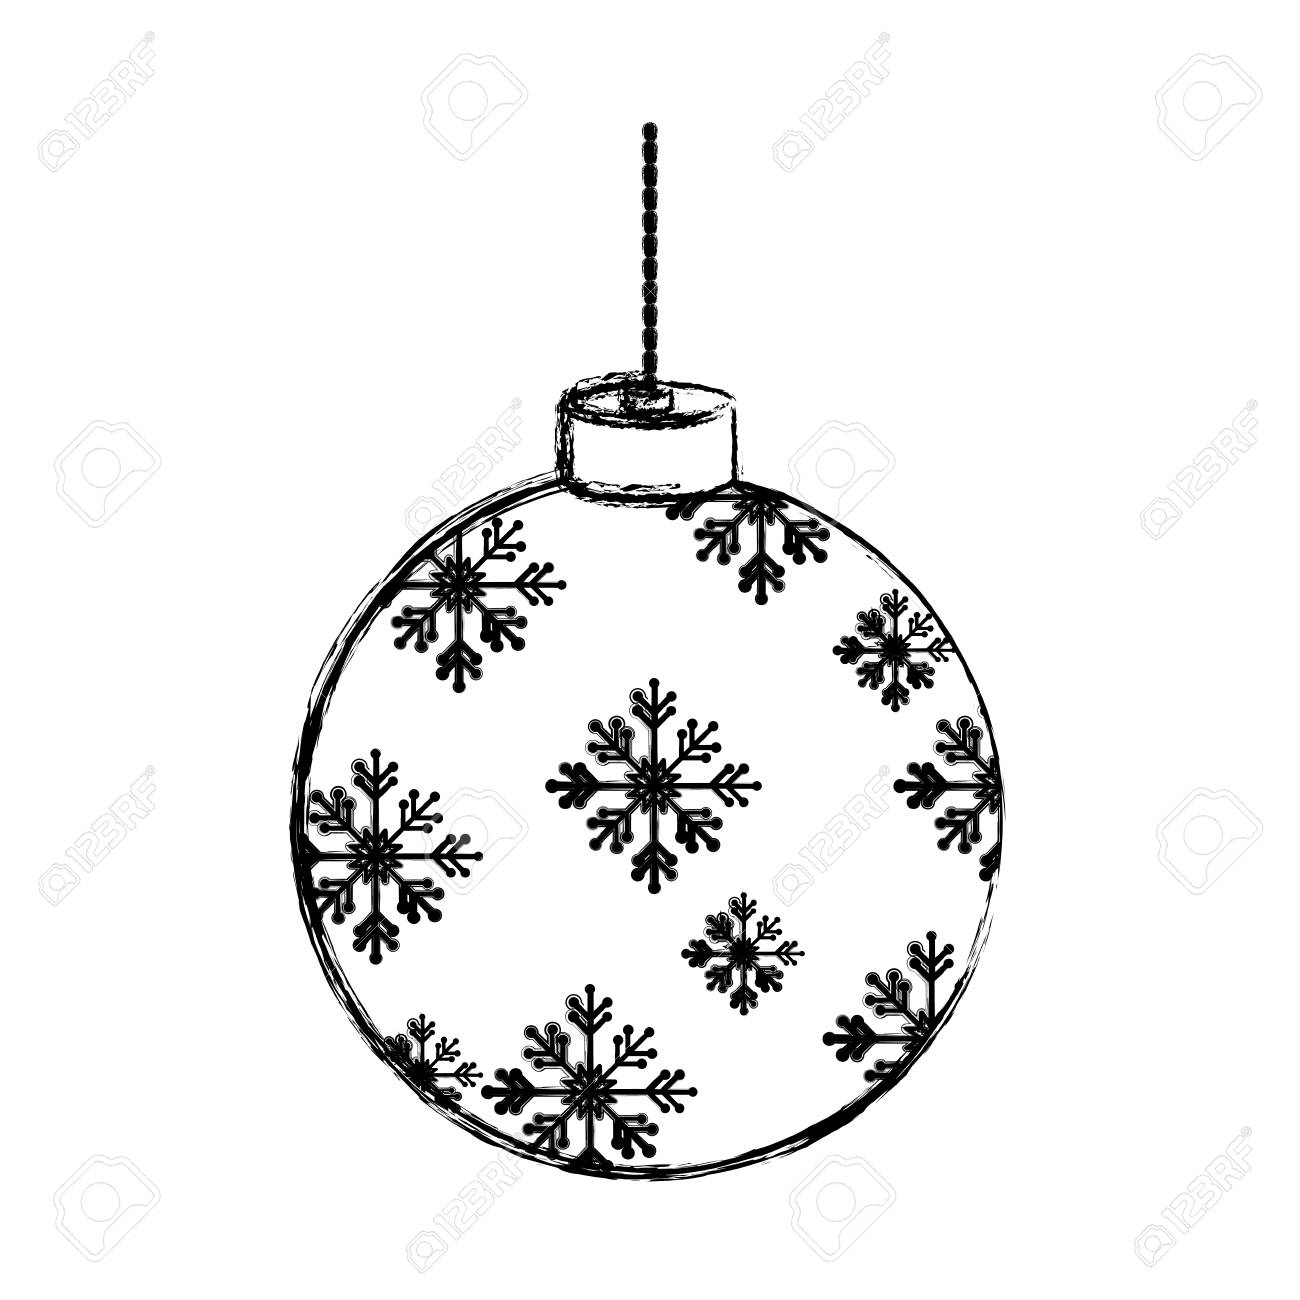 Christmas Balls Clipart Black And White.Flat Line Uncolored Christmas Ball Over White Background Vector